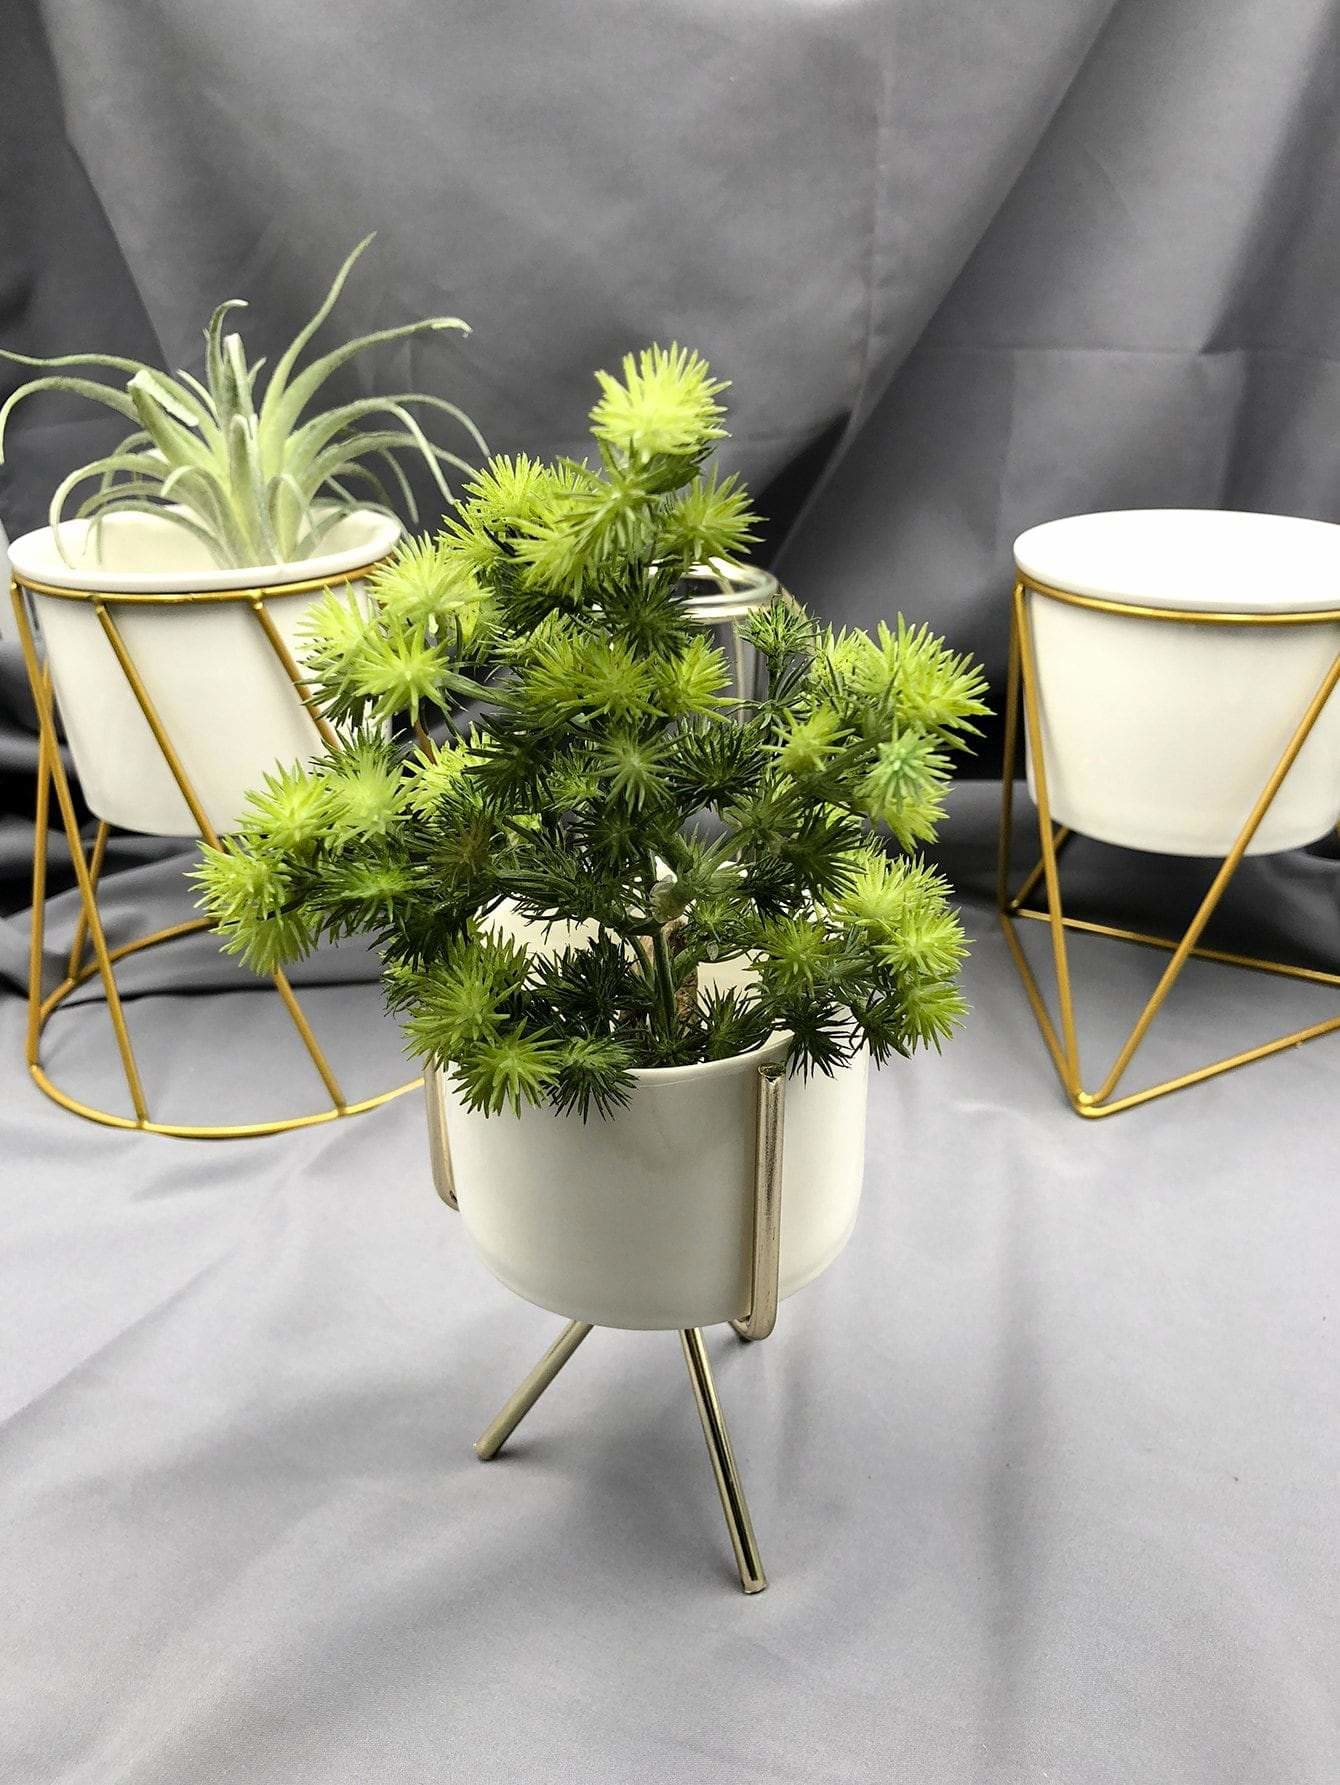 Flower Pot With Flower Pot Holder - Vases & Artificial Flowers